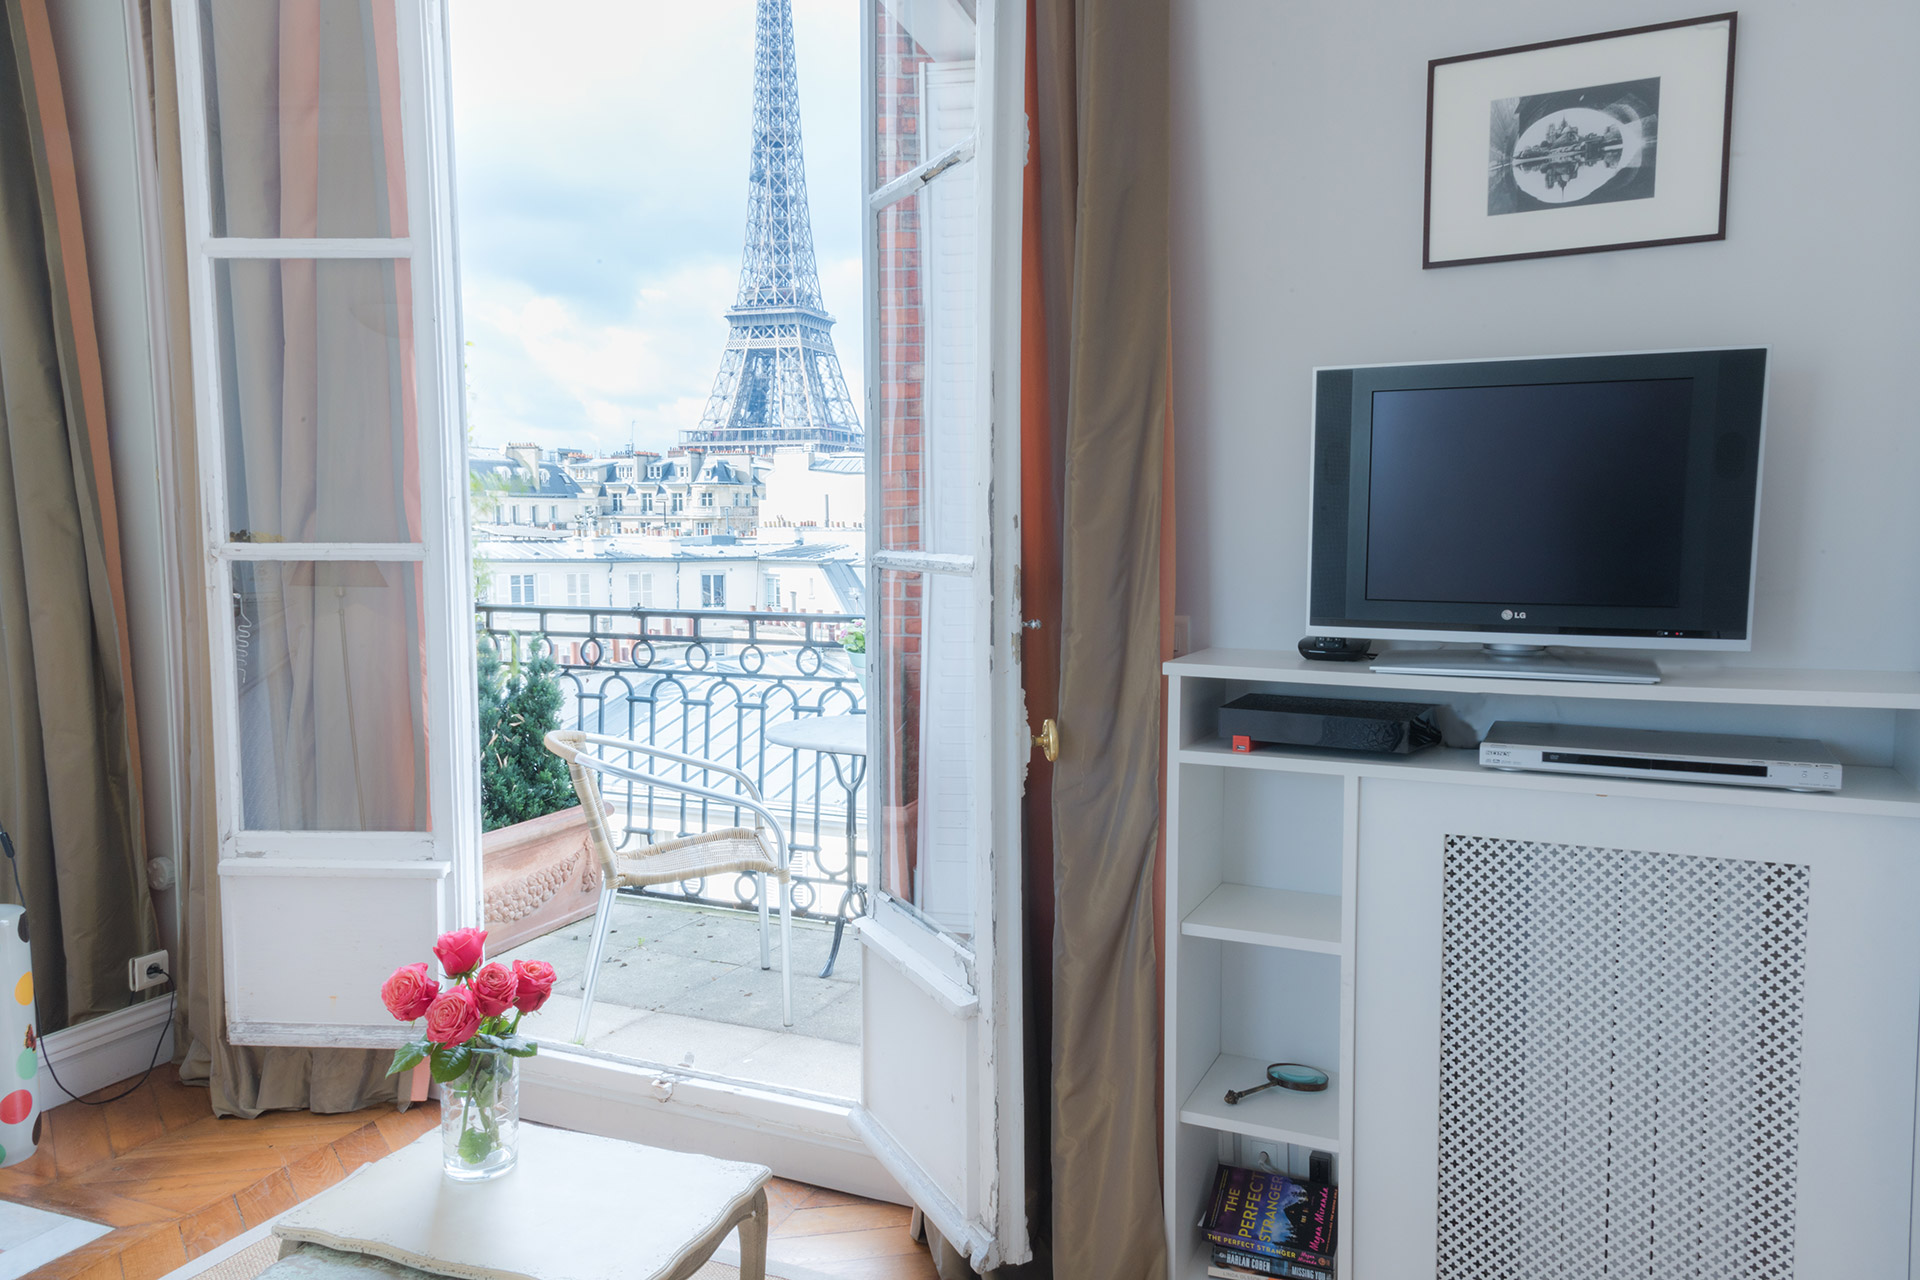 Watch TV or the Eiffel Tower in the Cognac vacation rental offered by Paris Perfect